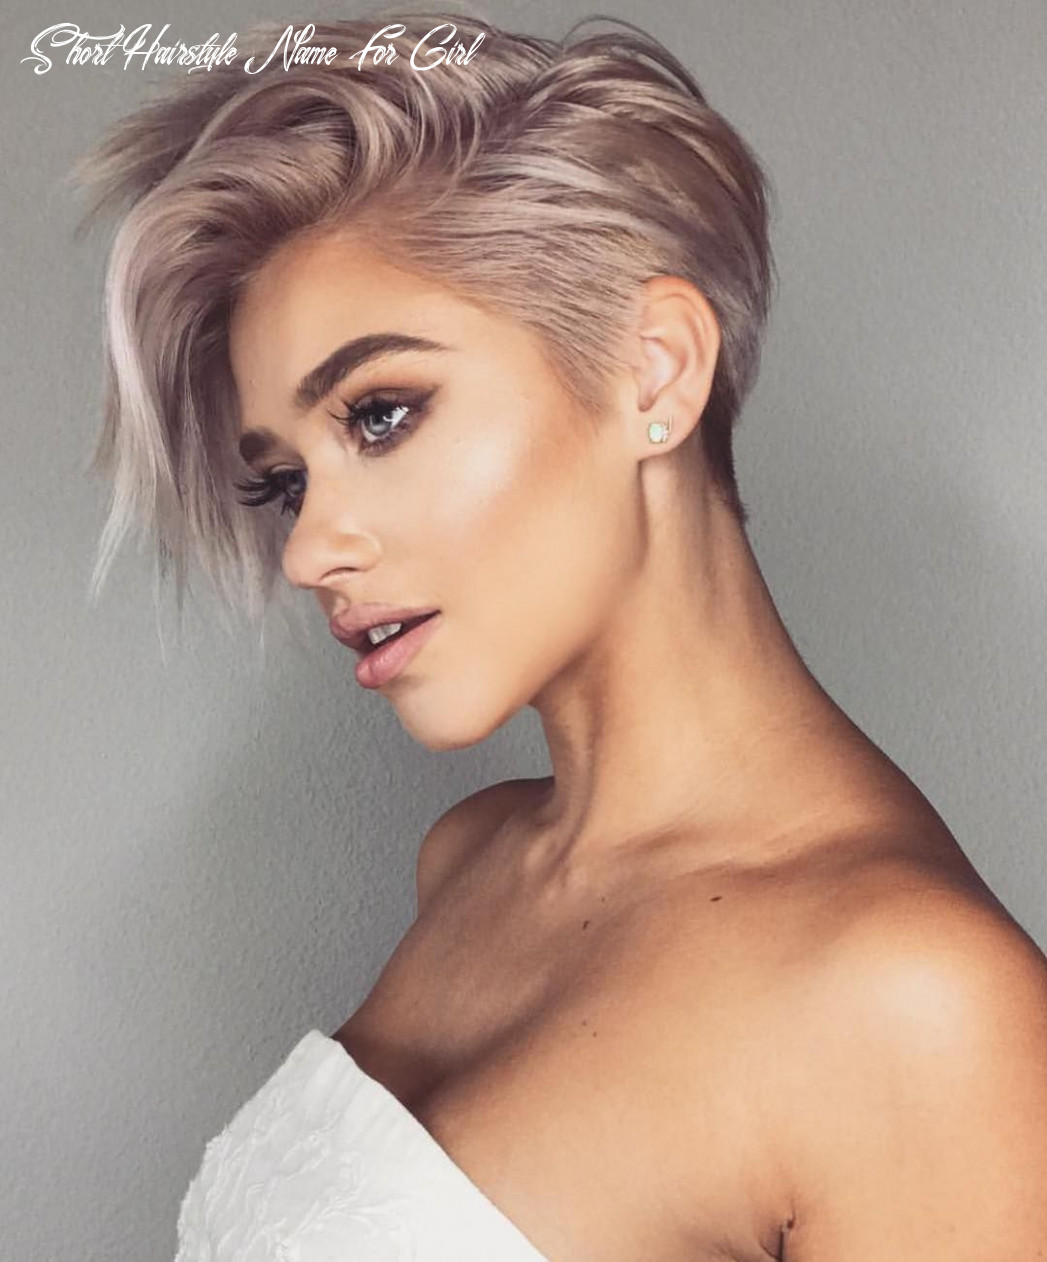 11 best short haircuts for women – eazy glam short hairstyle name for girl